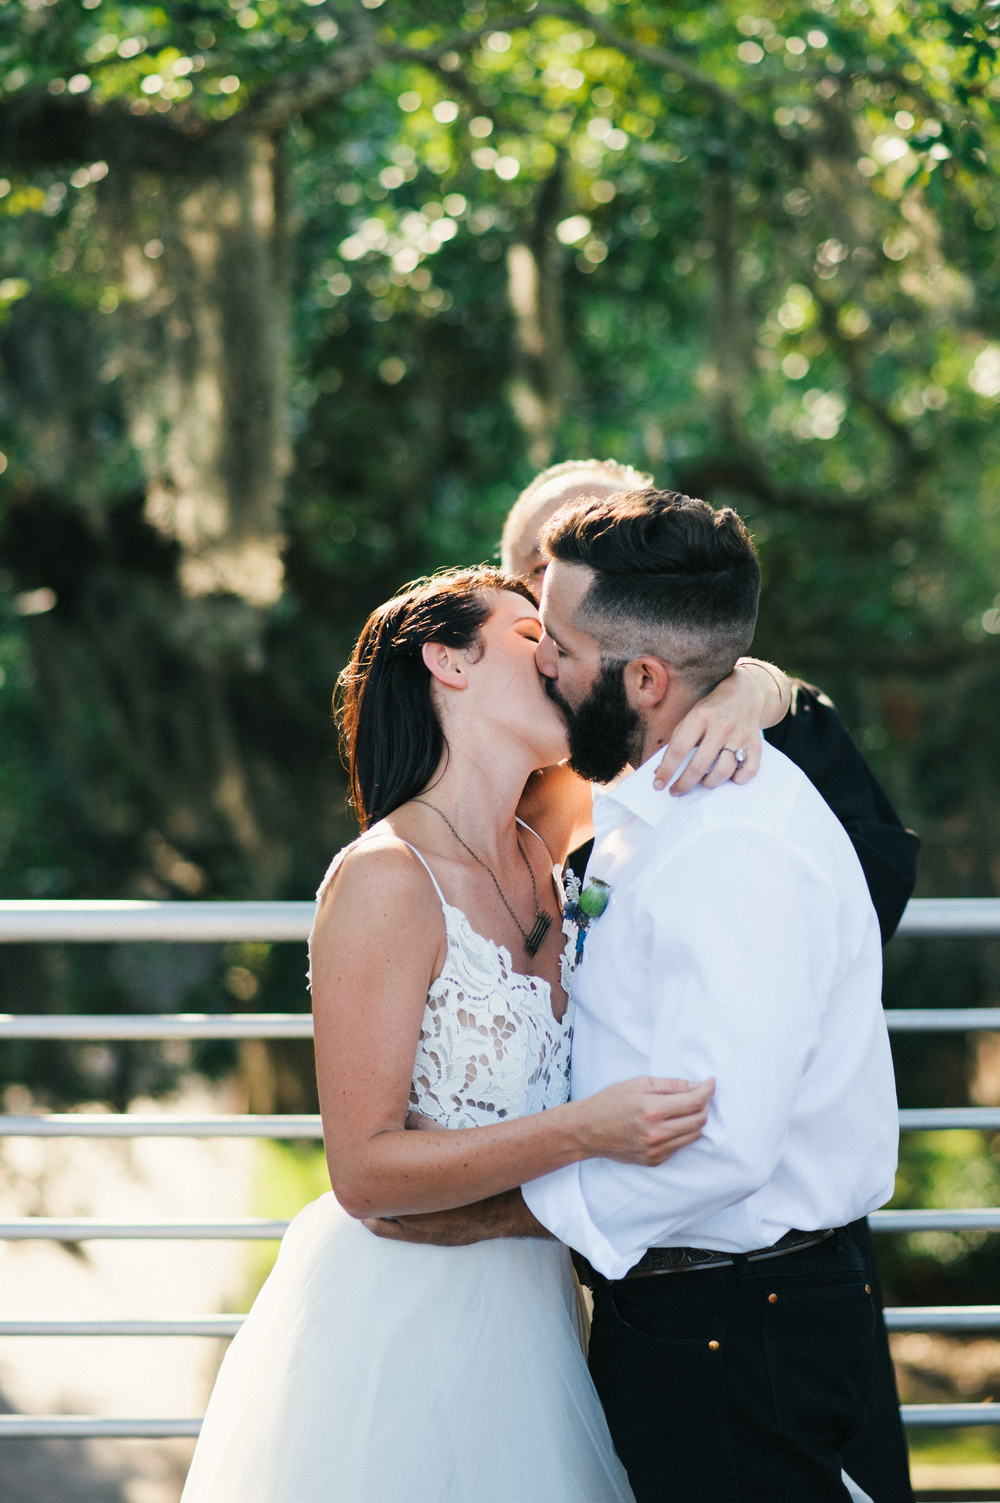 savannah-elopement-local-11-ten-ivory-and-beau-m-newsom-photography-coastal-shoot-savannah-georgia- (412 of 477).jpg